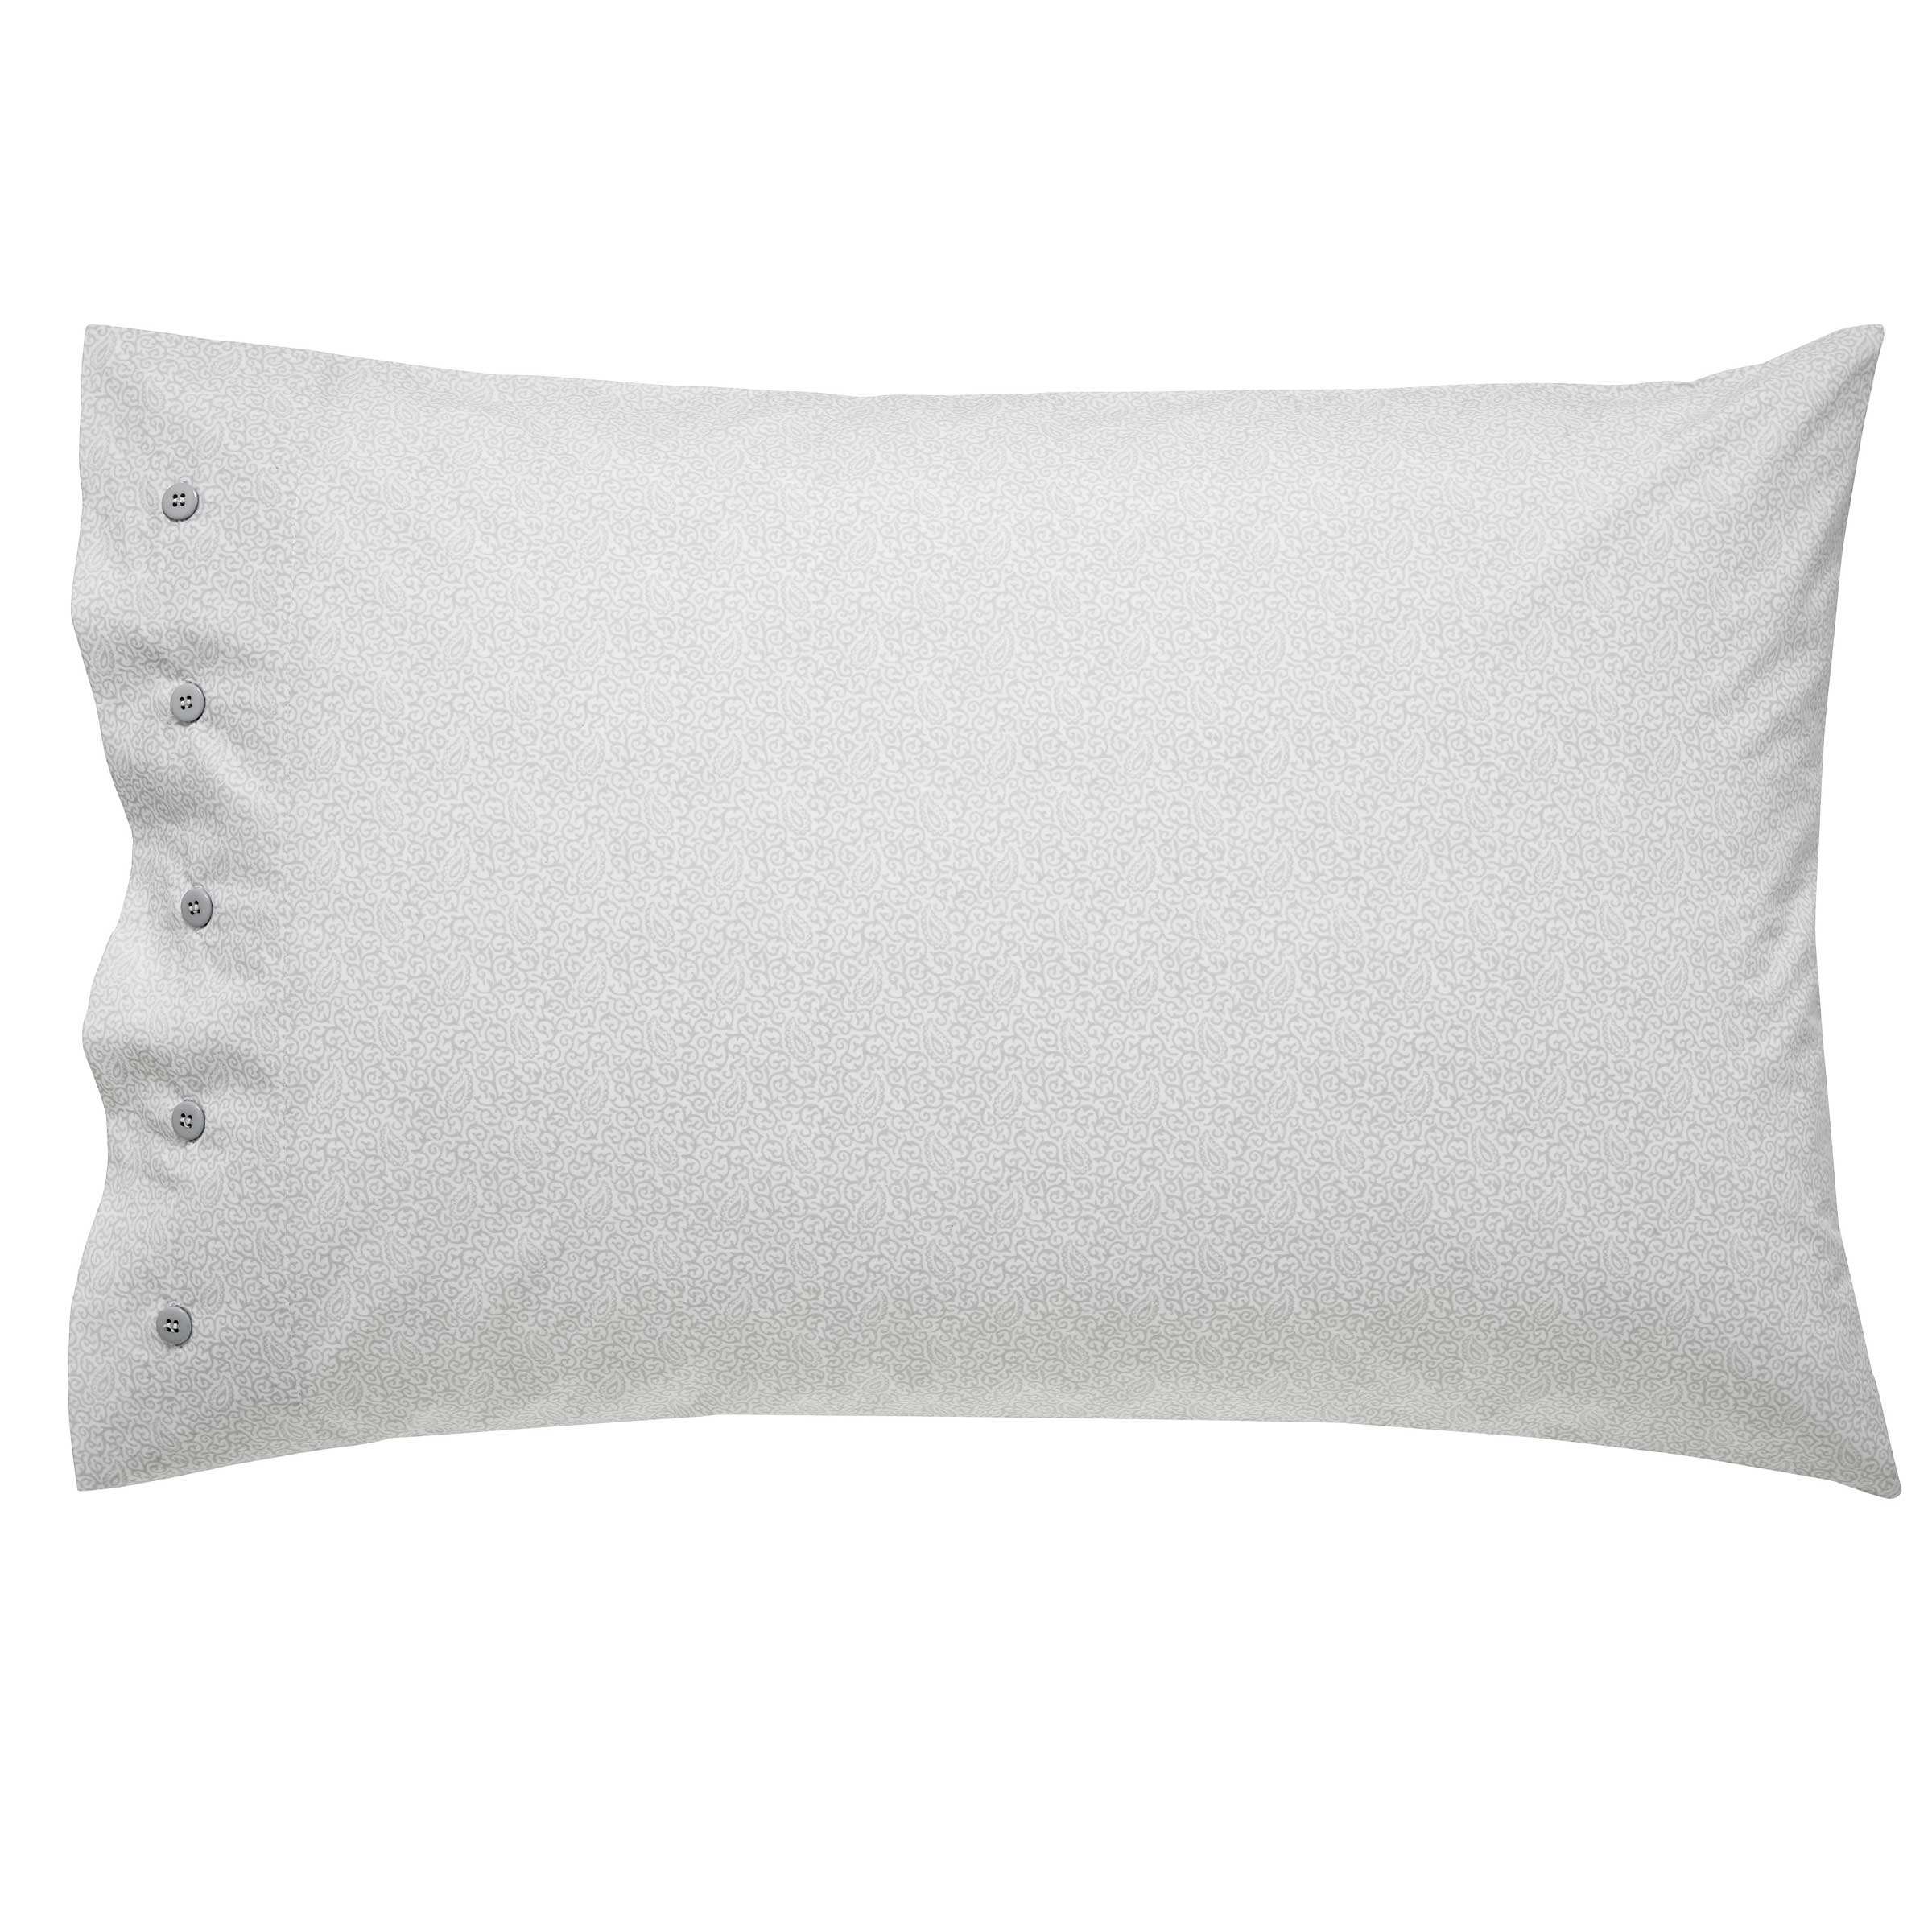 Bedeck 1951 Bedding Senna Housewife Pillowcase Silver